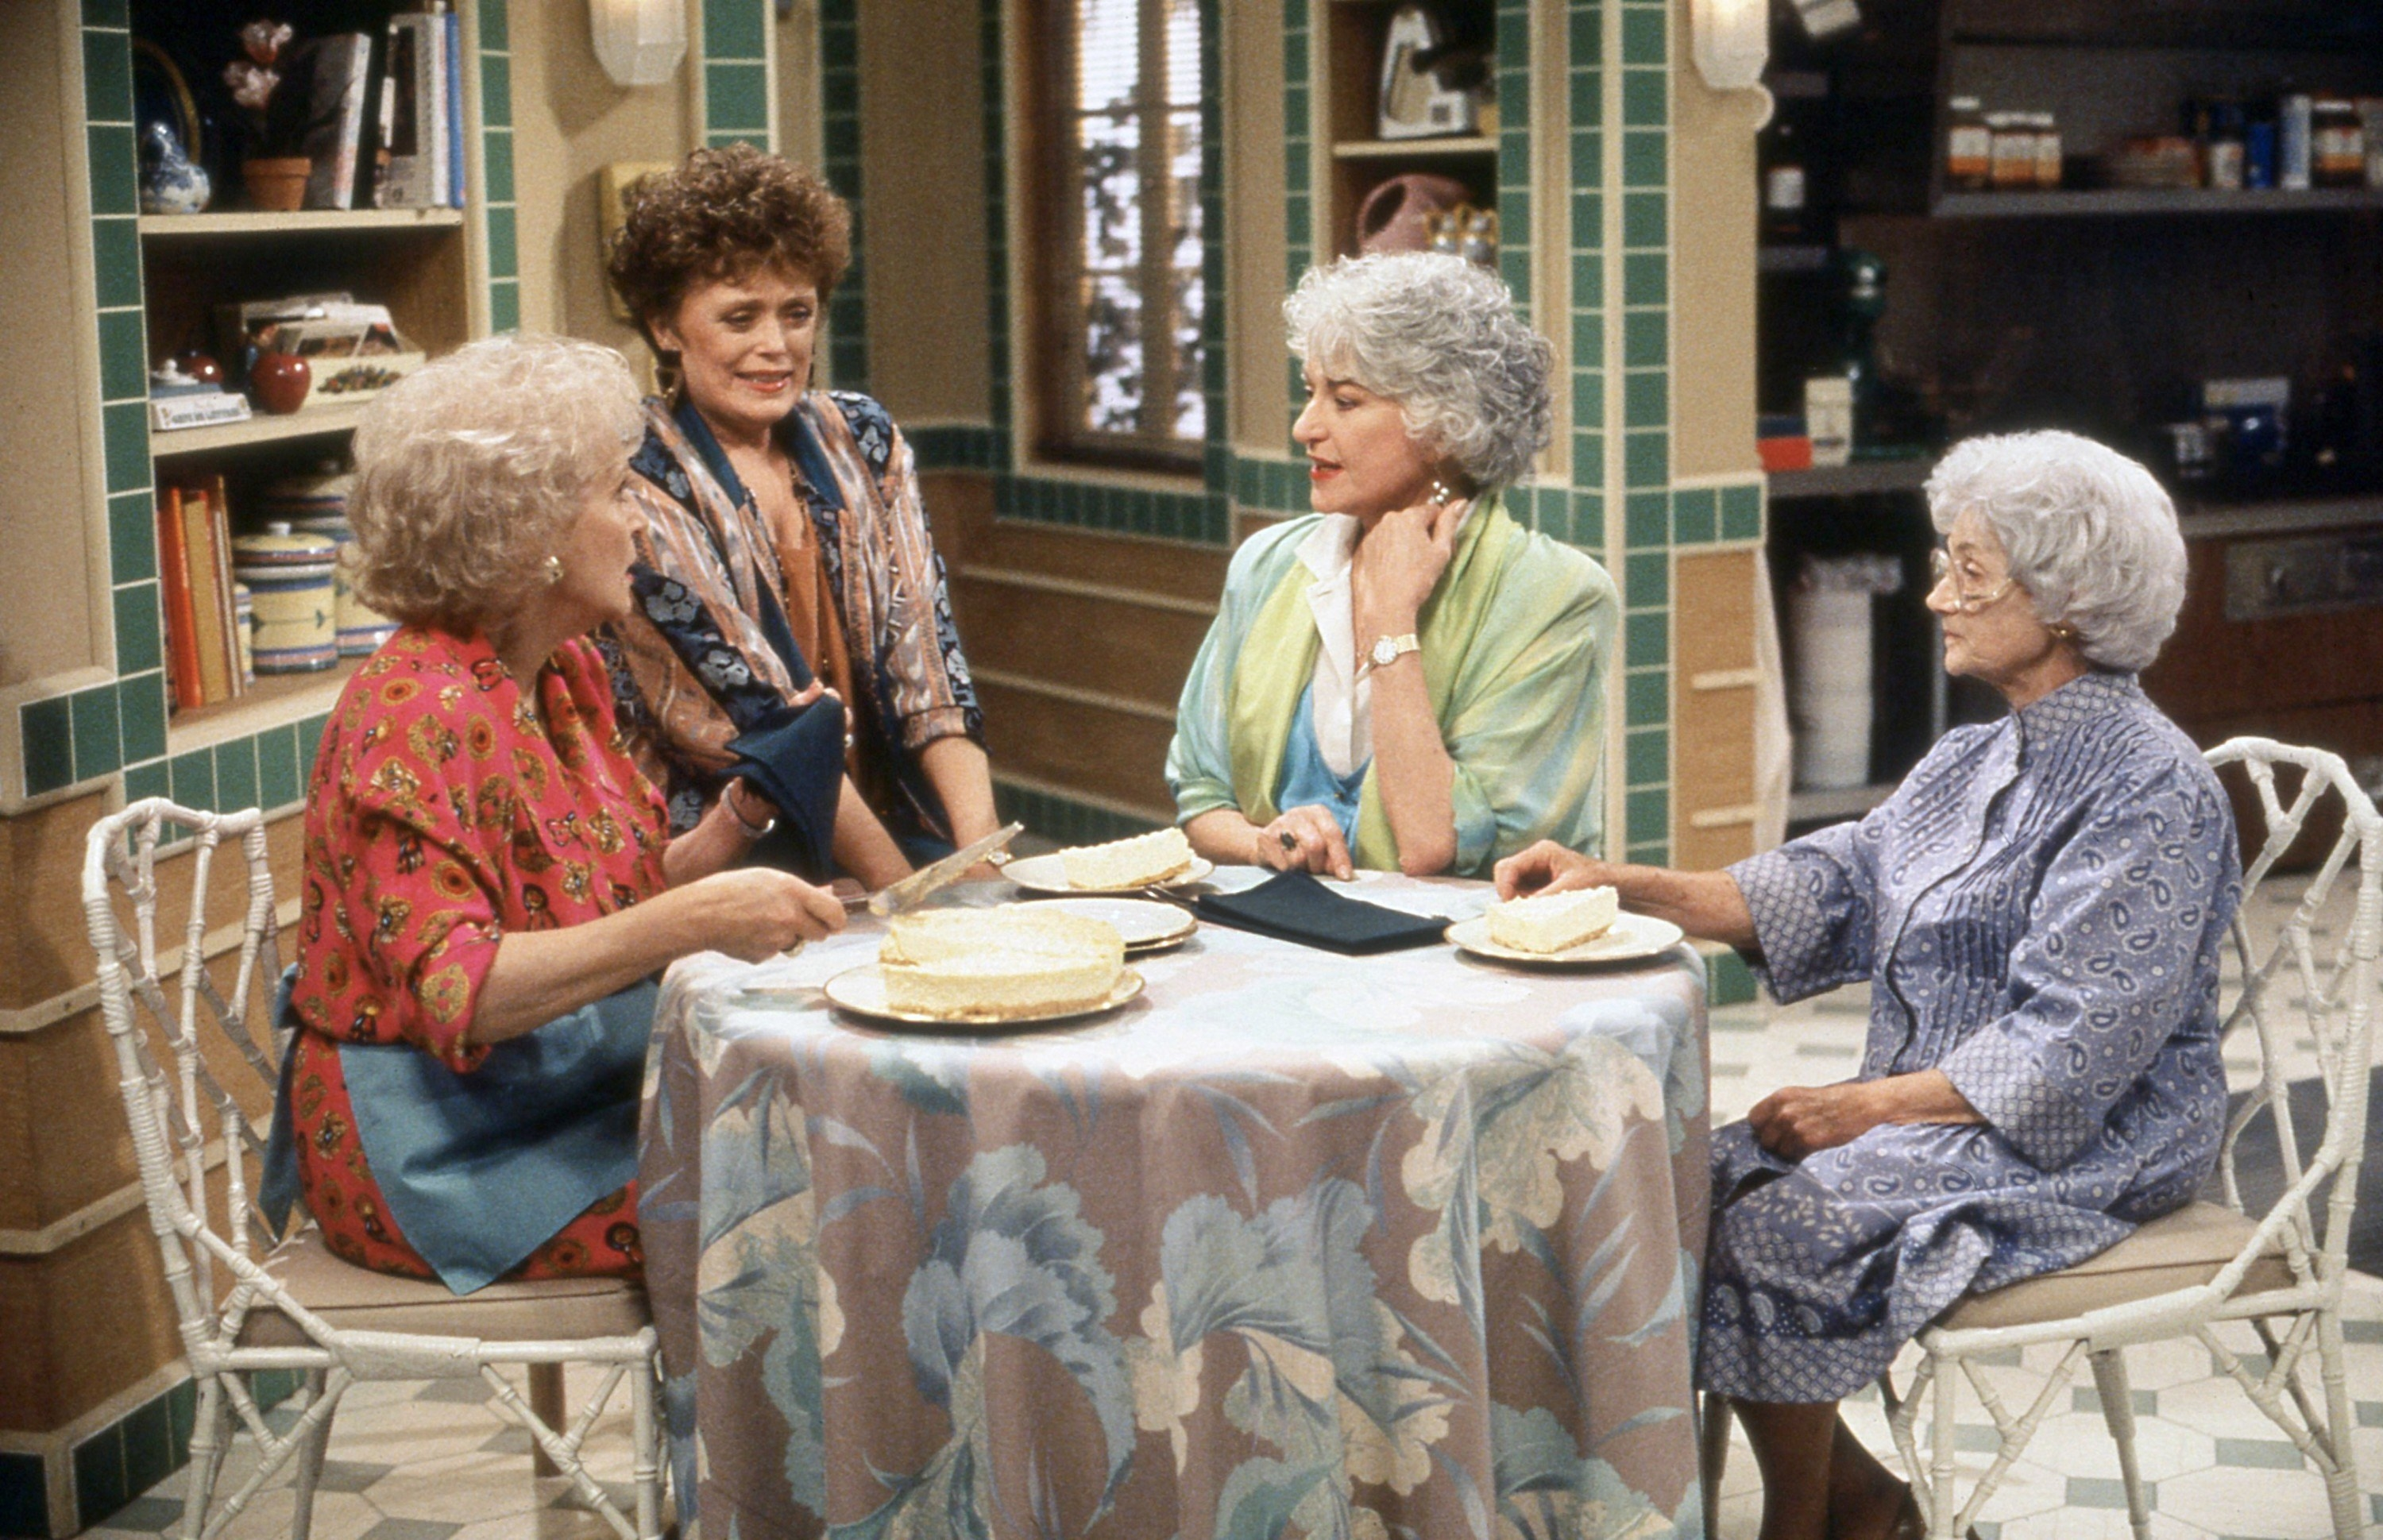 the Golden Girls at a table